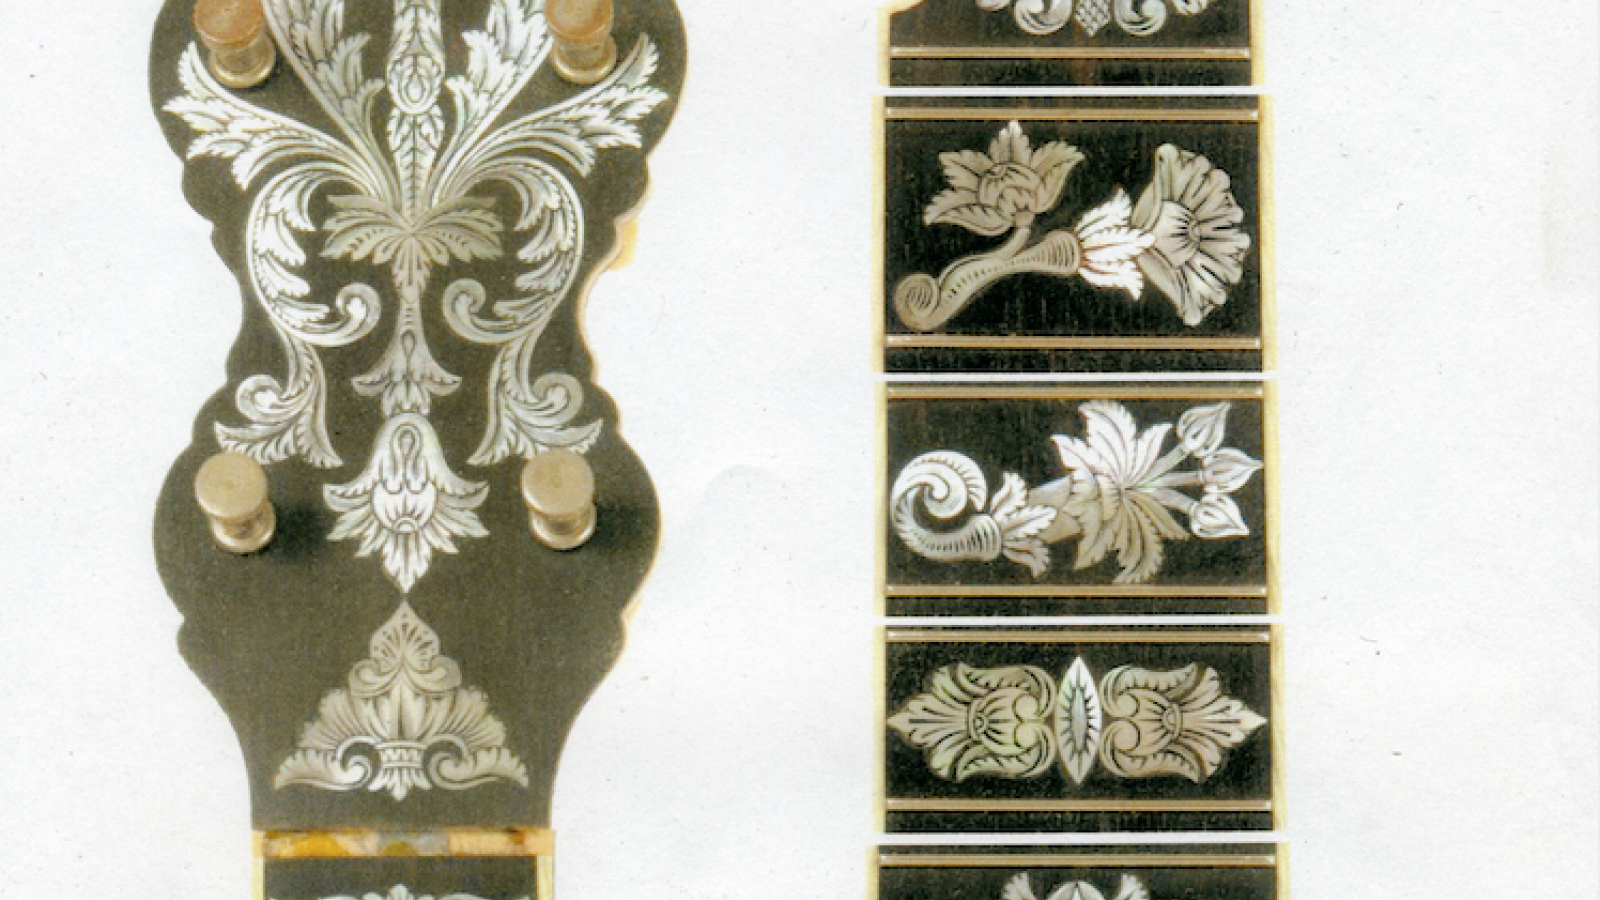 Engravings on the neck of a banjo